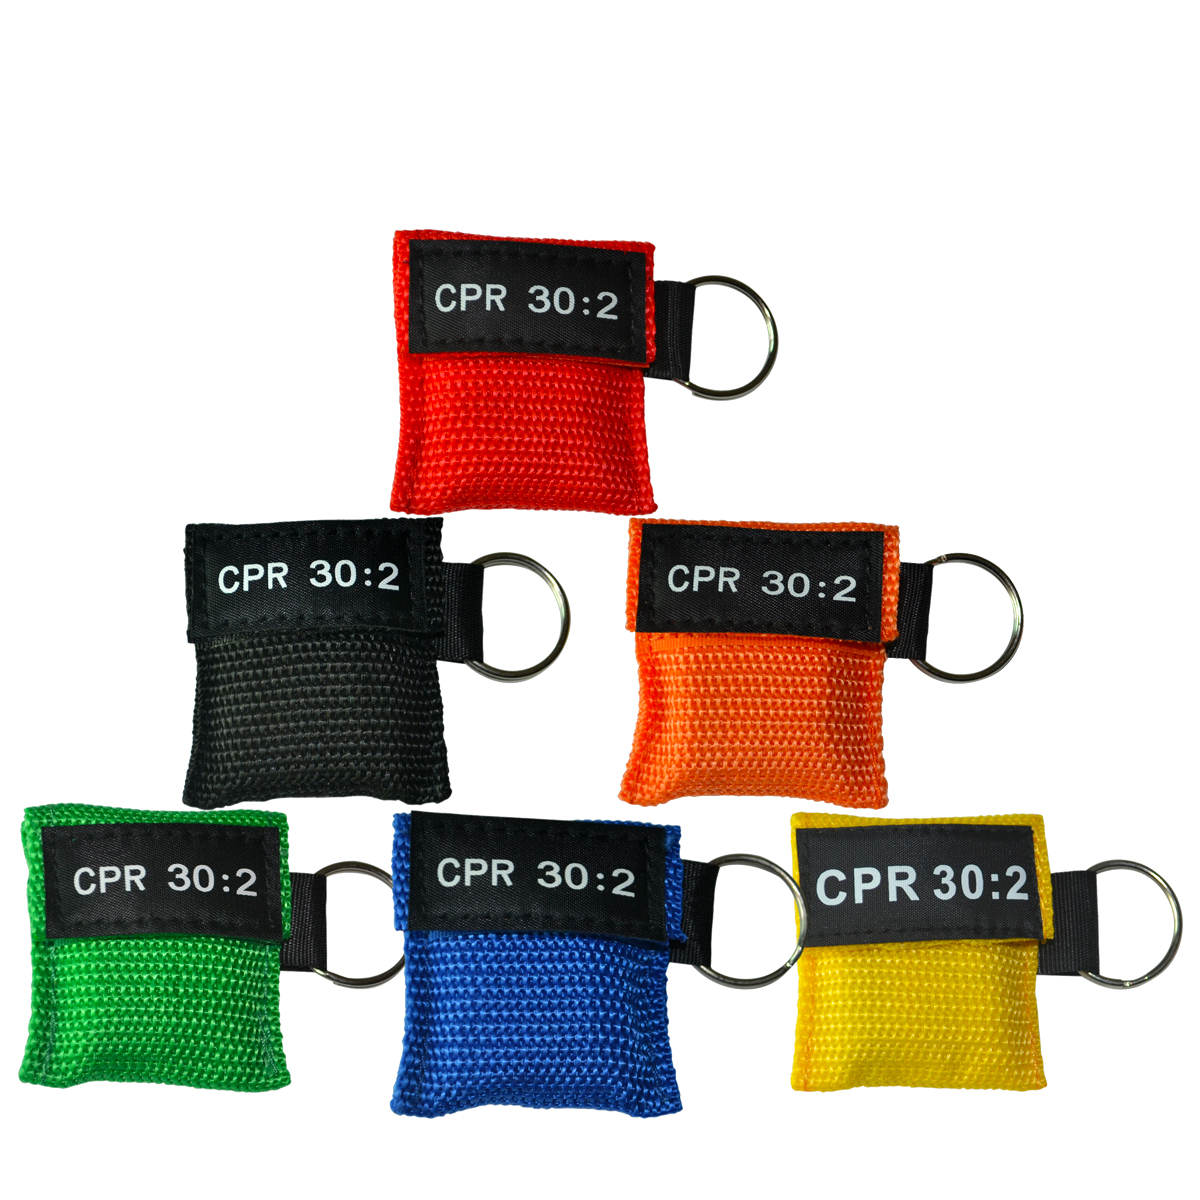 100Pcs/Pack CPR Resuscitator Mask 30:2 CPR Rescue Face Shield With Key Ring For First Aid Training 6 Colors Can Be Chosen 500pcs pack cpr resuscitator cpr face protect mask with keychain key ring for first aid training teaching kit emergency use